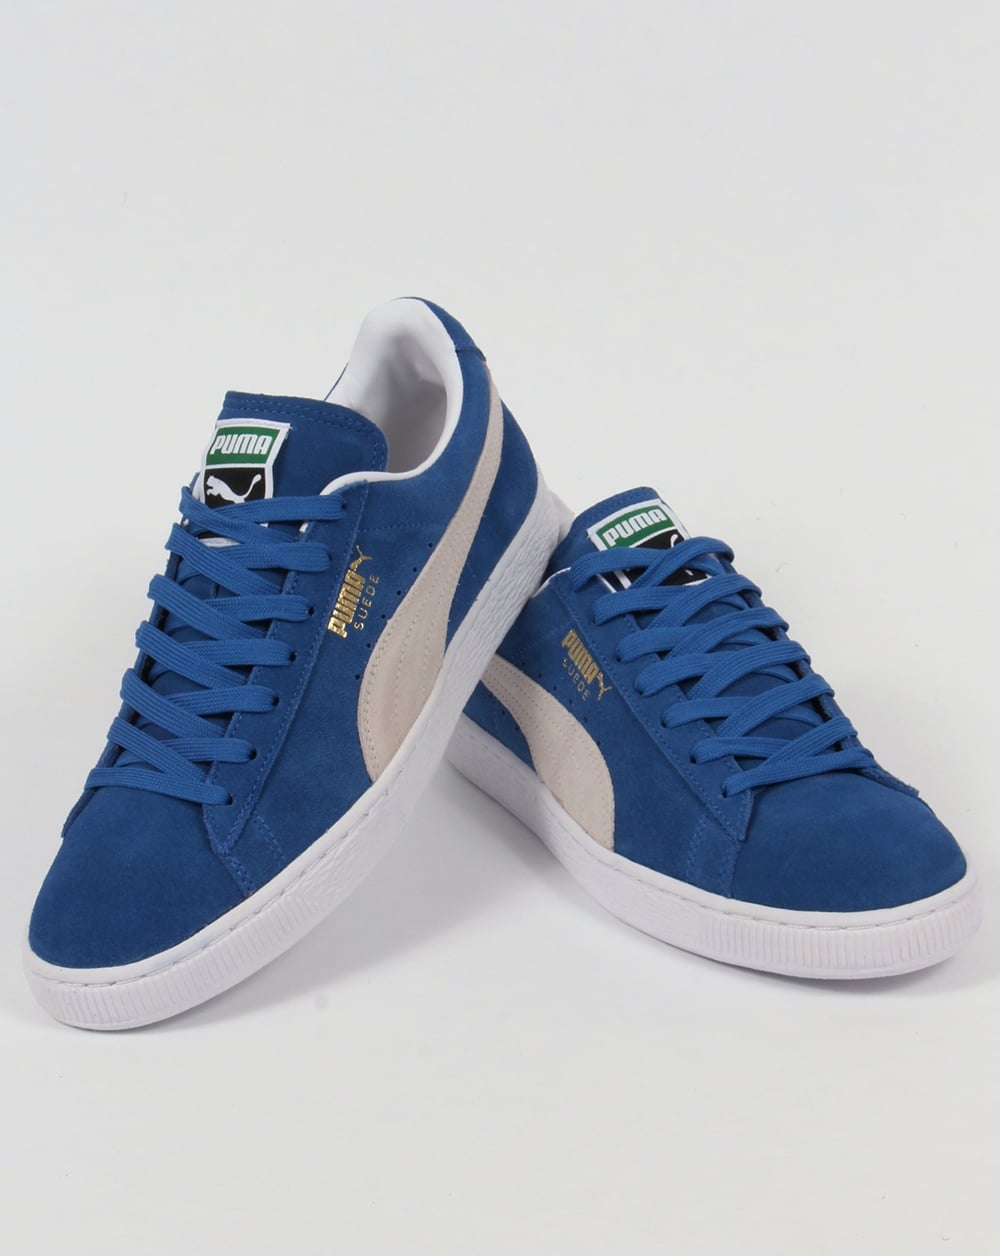 e30560d66c1 Puma Suede Classic Trainers Olympia Blue/White,shoes,archive,originals